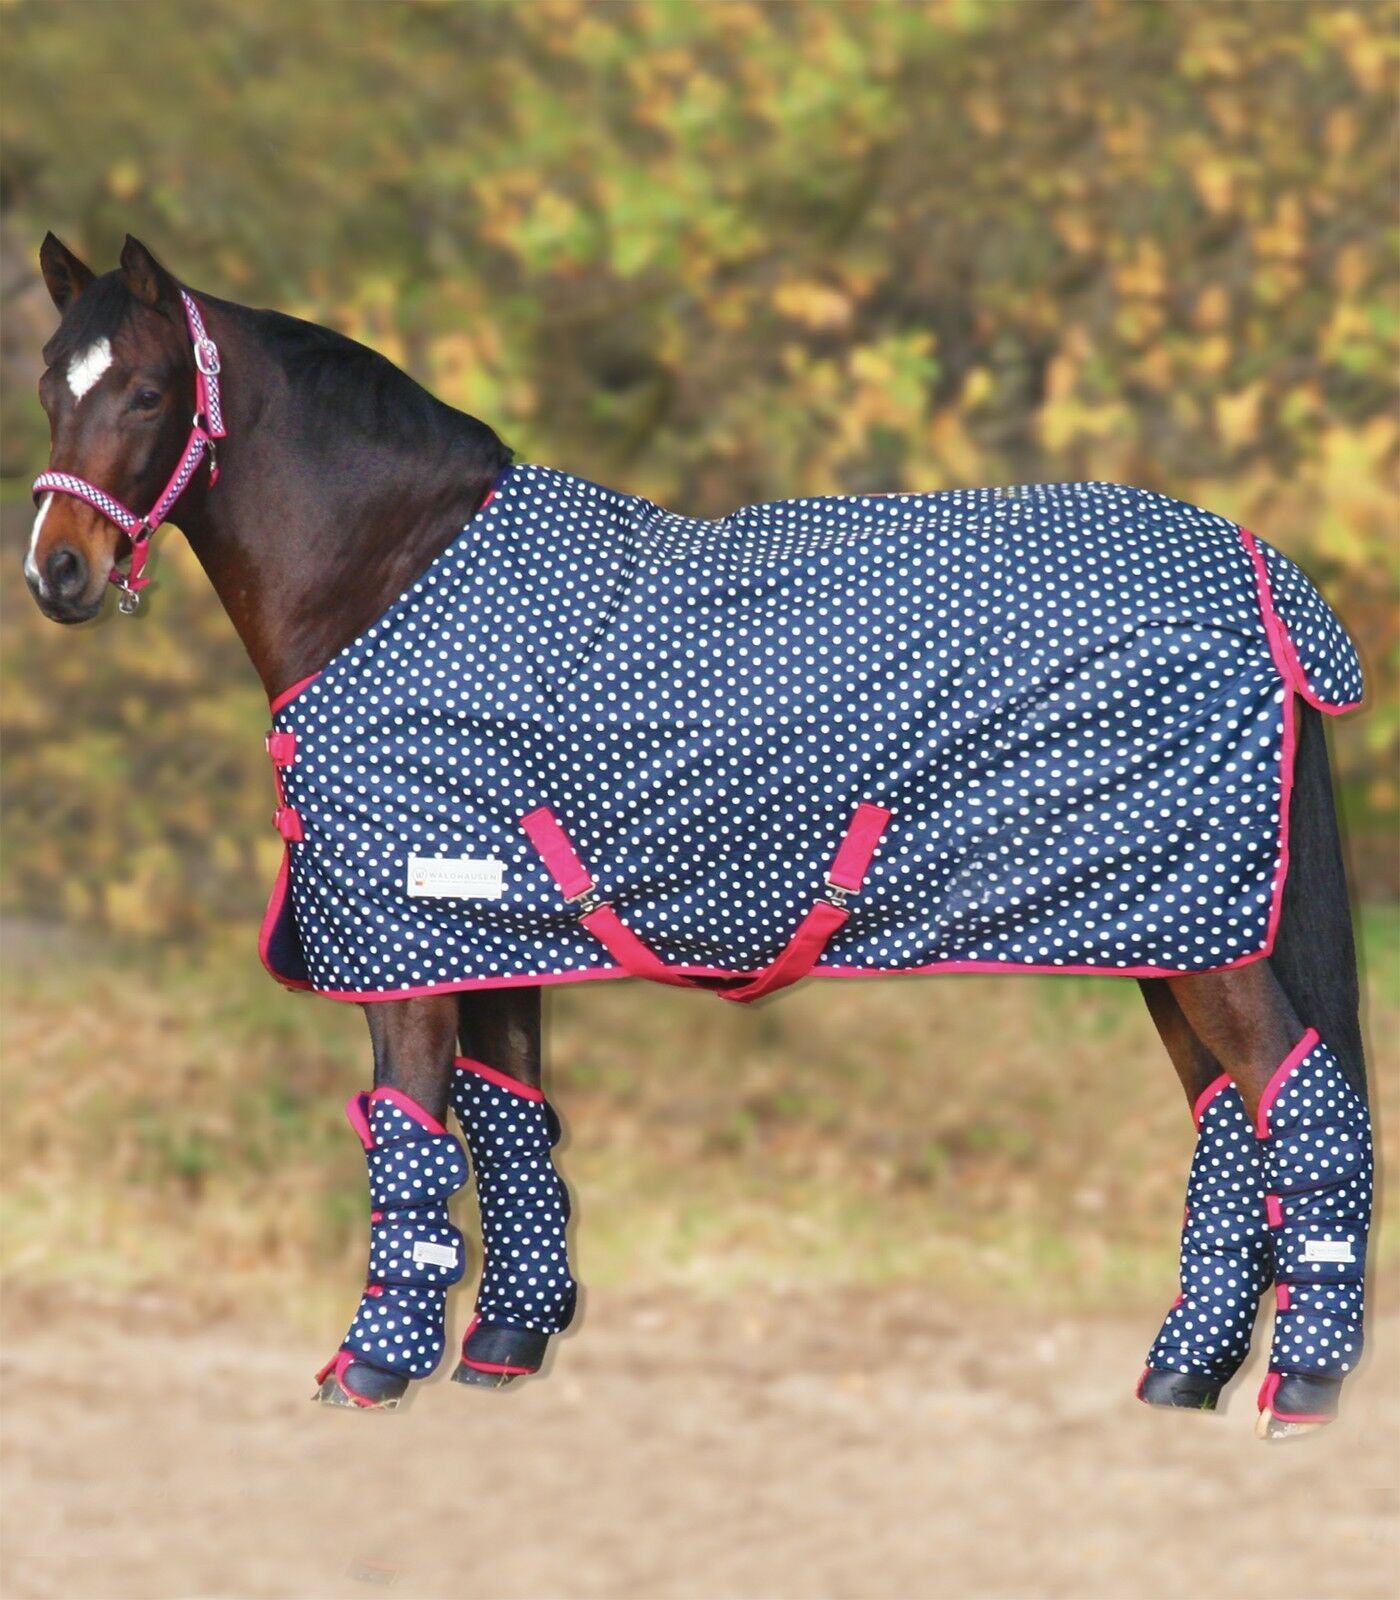 Outdoor Blanket,Rain Cover,Turnout Blanket Pony Unicorn 100g